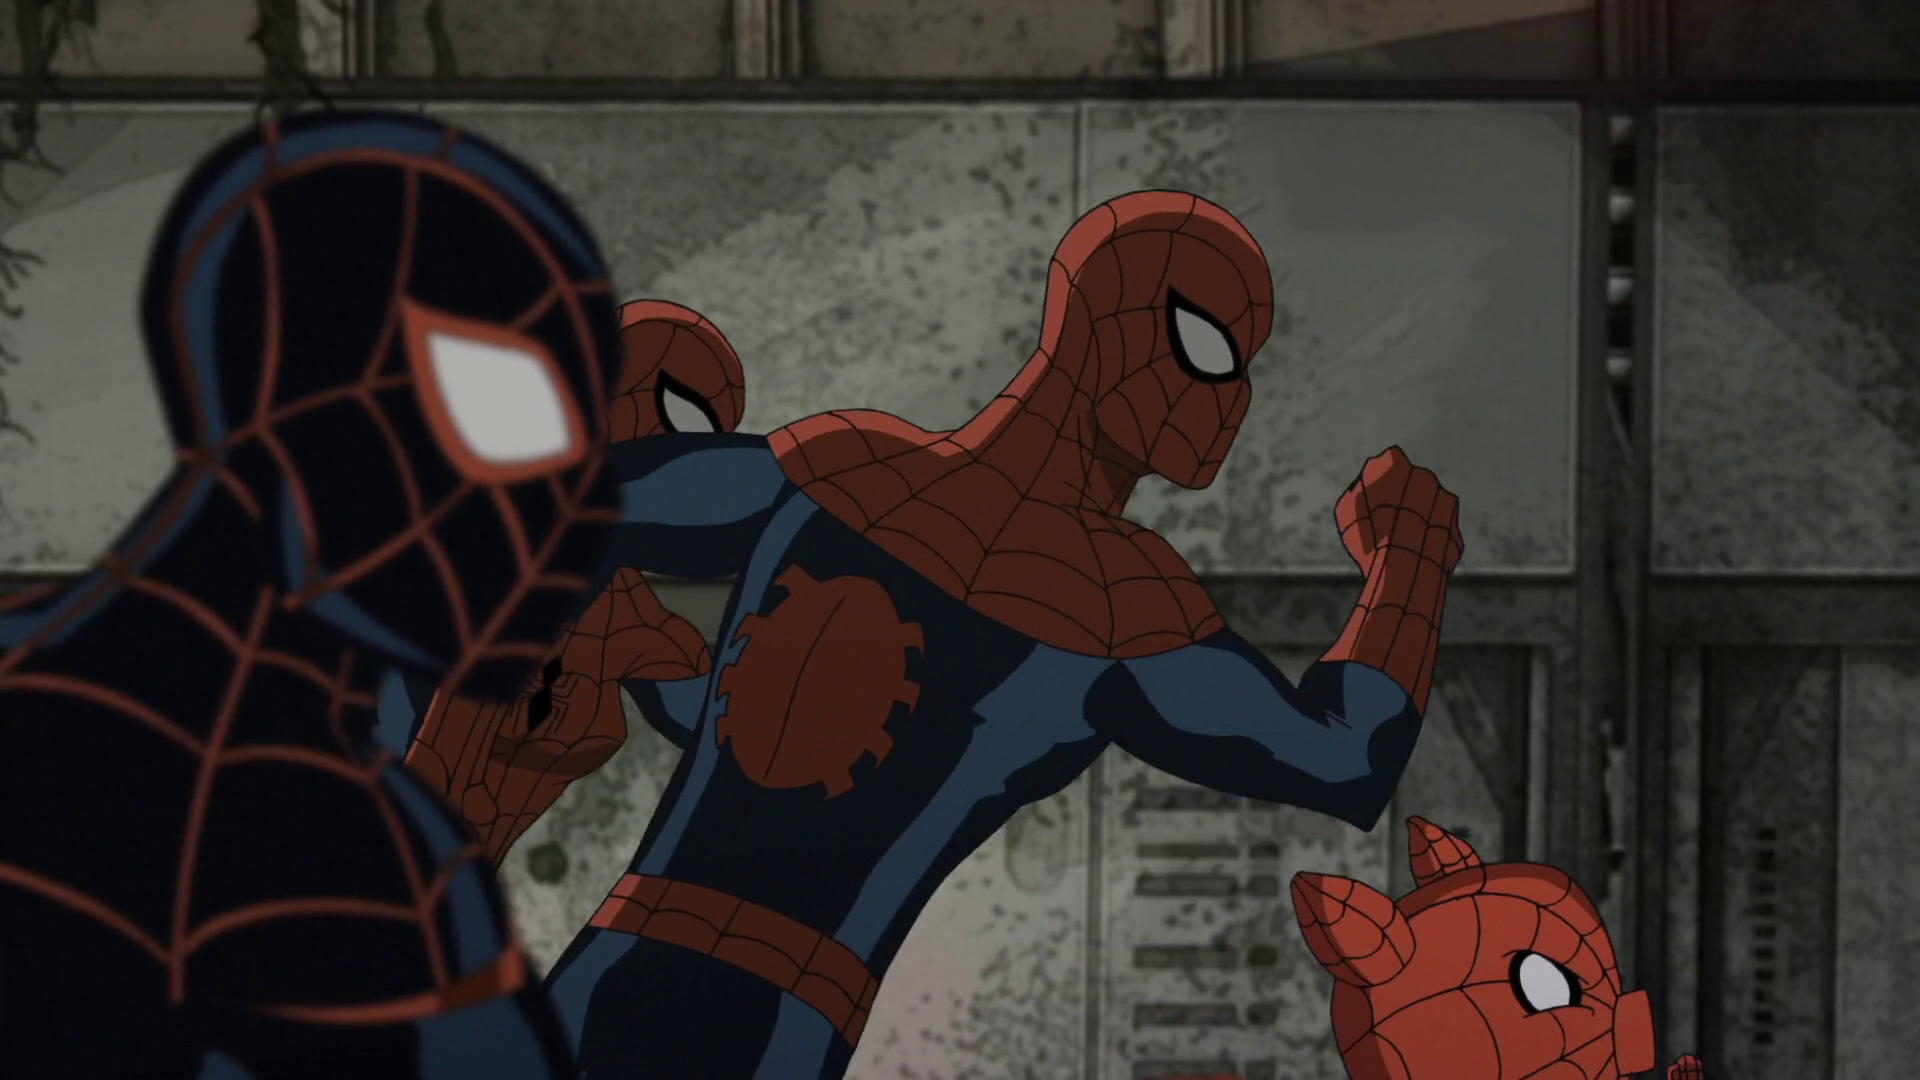 Ultimate spider man web warriors squirrel girl - photo#28